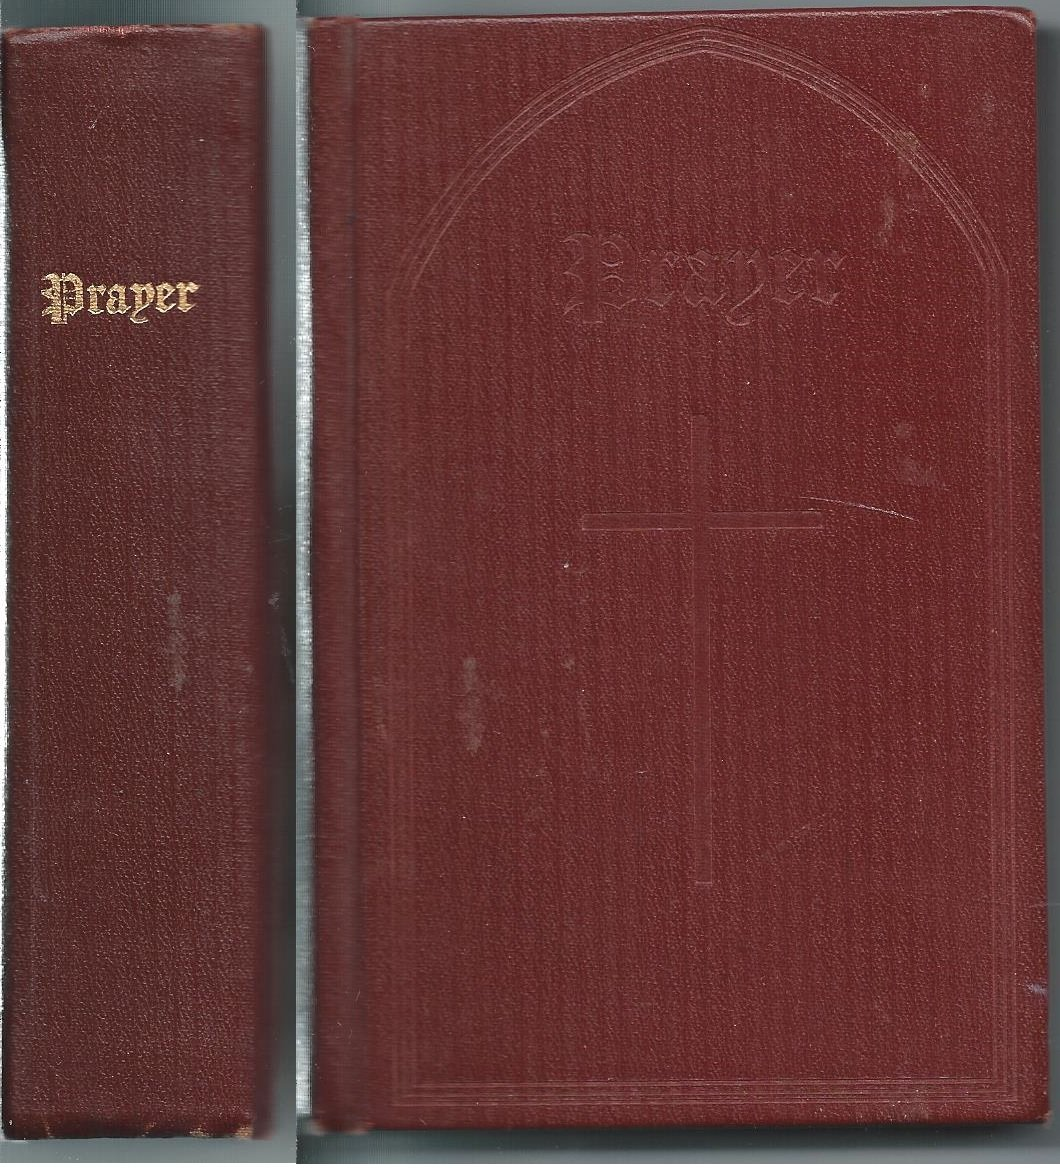 Read Online The Book of Common Prayer and Administration of the Sacraments and Other Rites and Ceremonies of the Church (1928) PDF